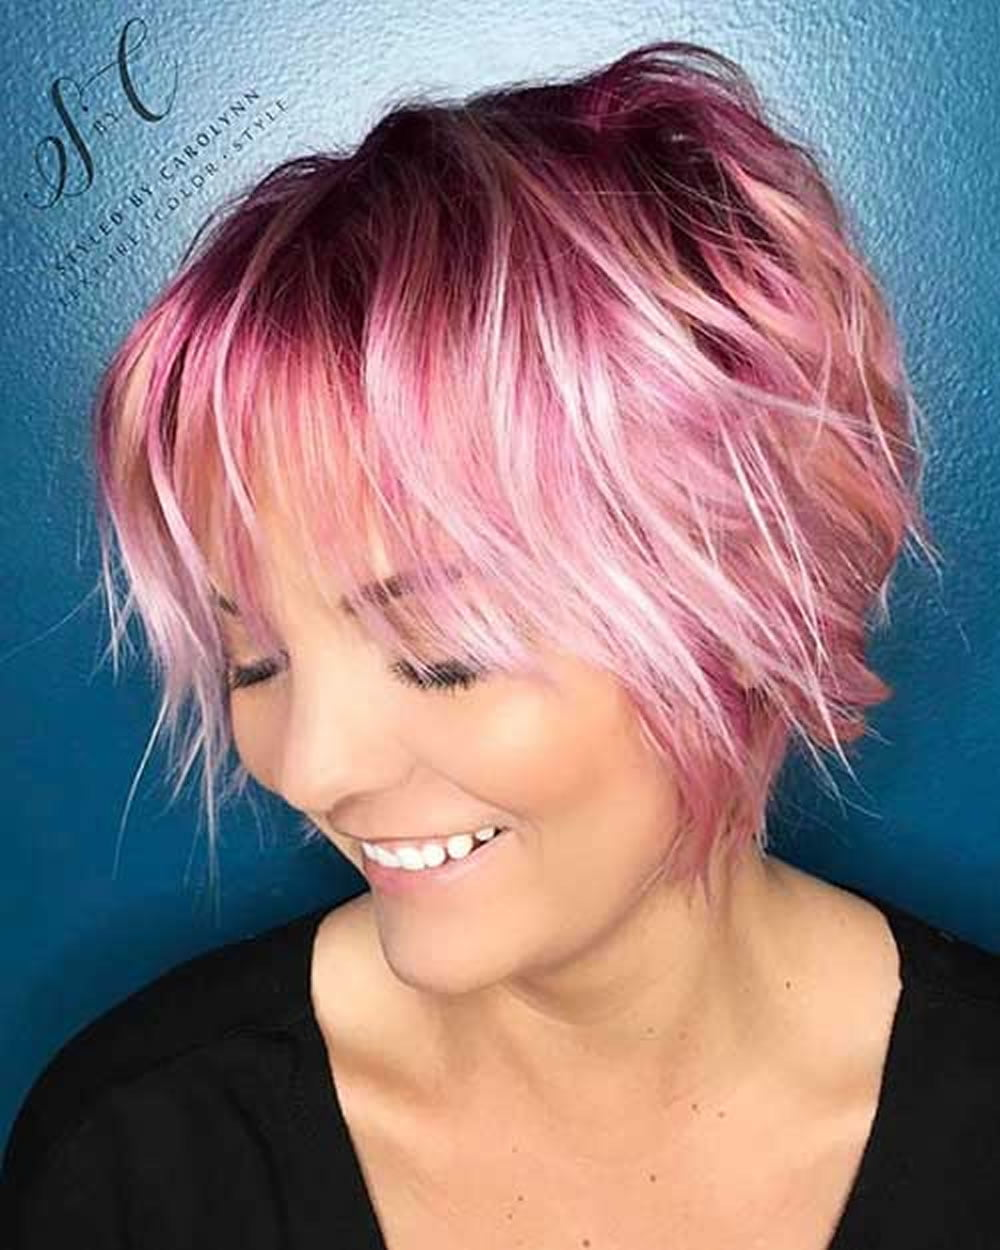 Medium Bob Haircuts & Short Bob Hairstyles & Bob Cut Hair for 2018